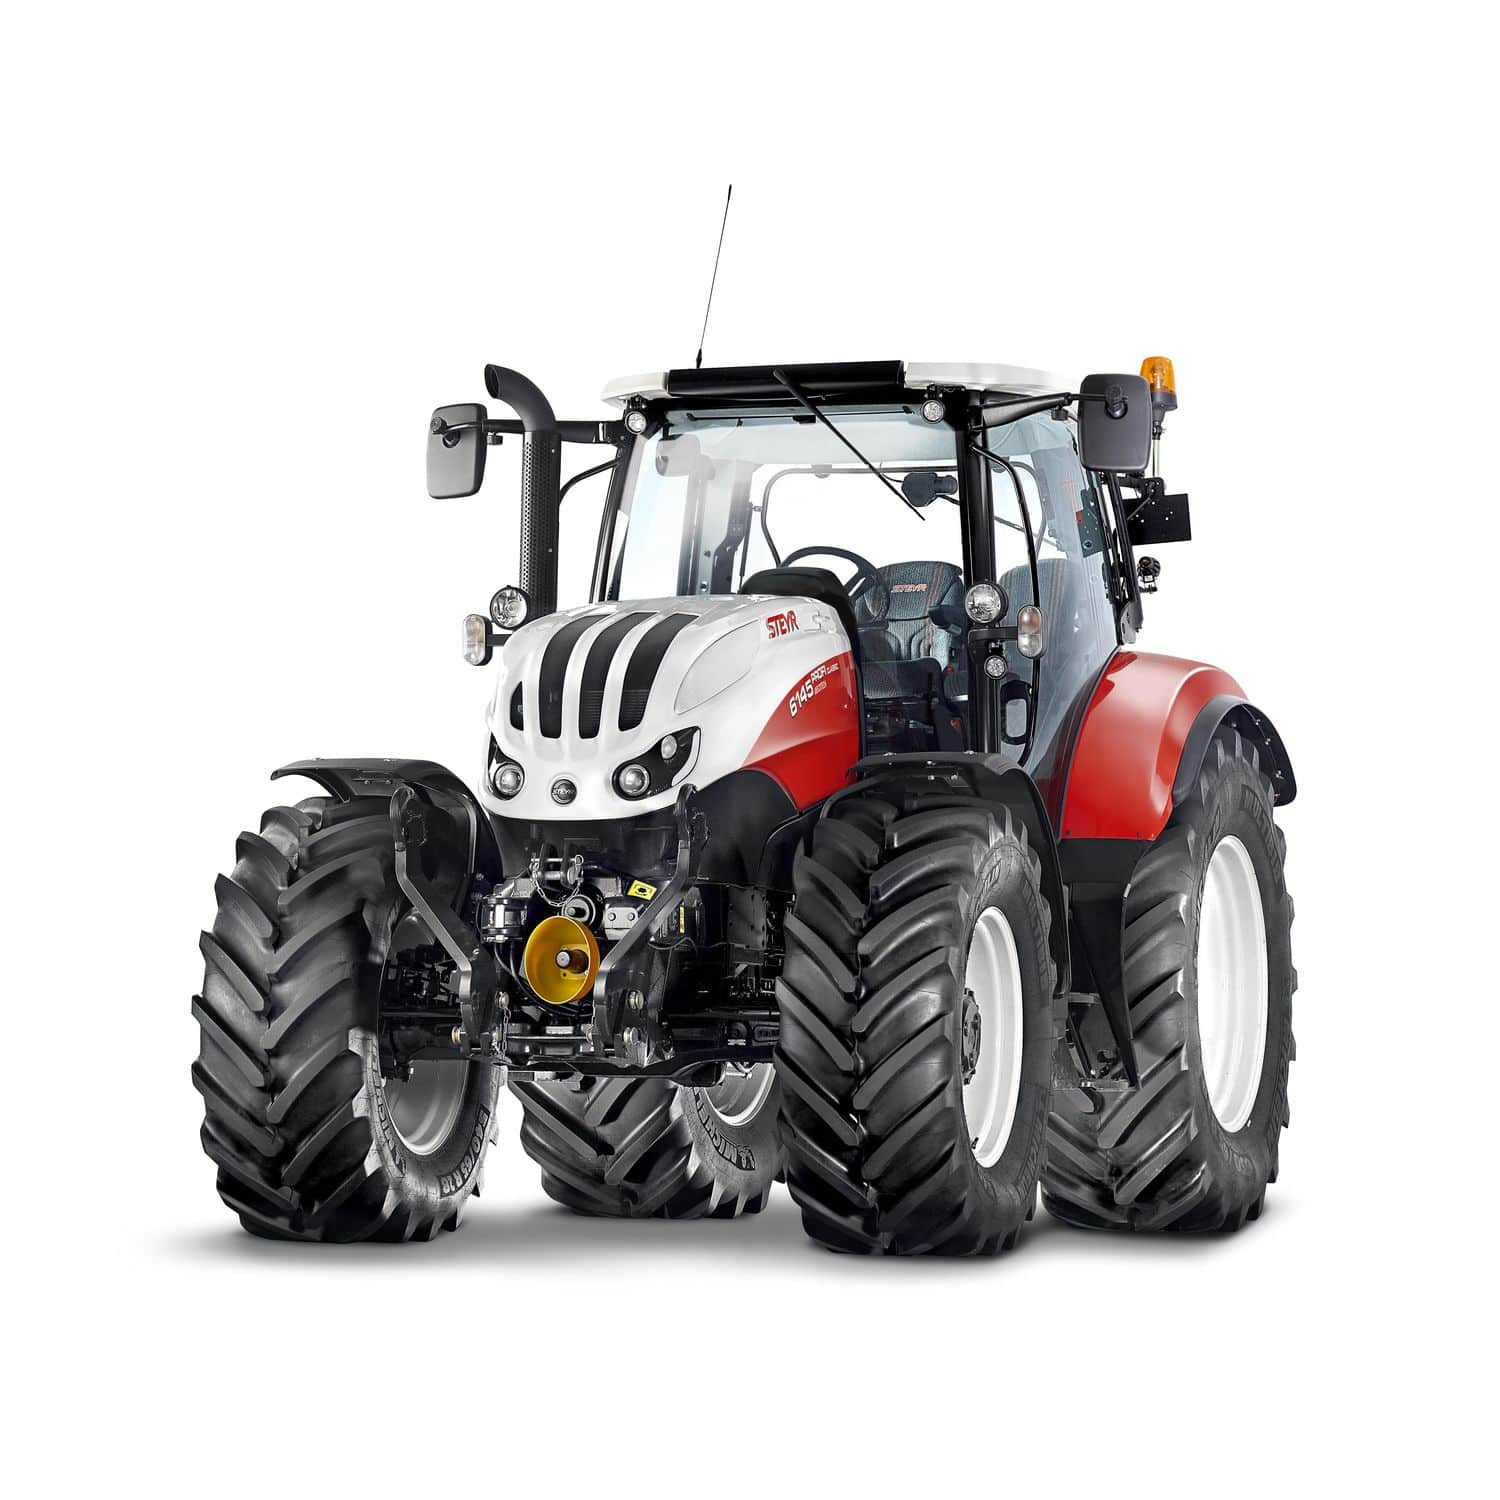 Power-shift tractor / with cab / front PTO / with front-loader